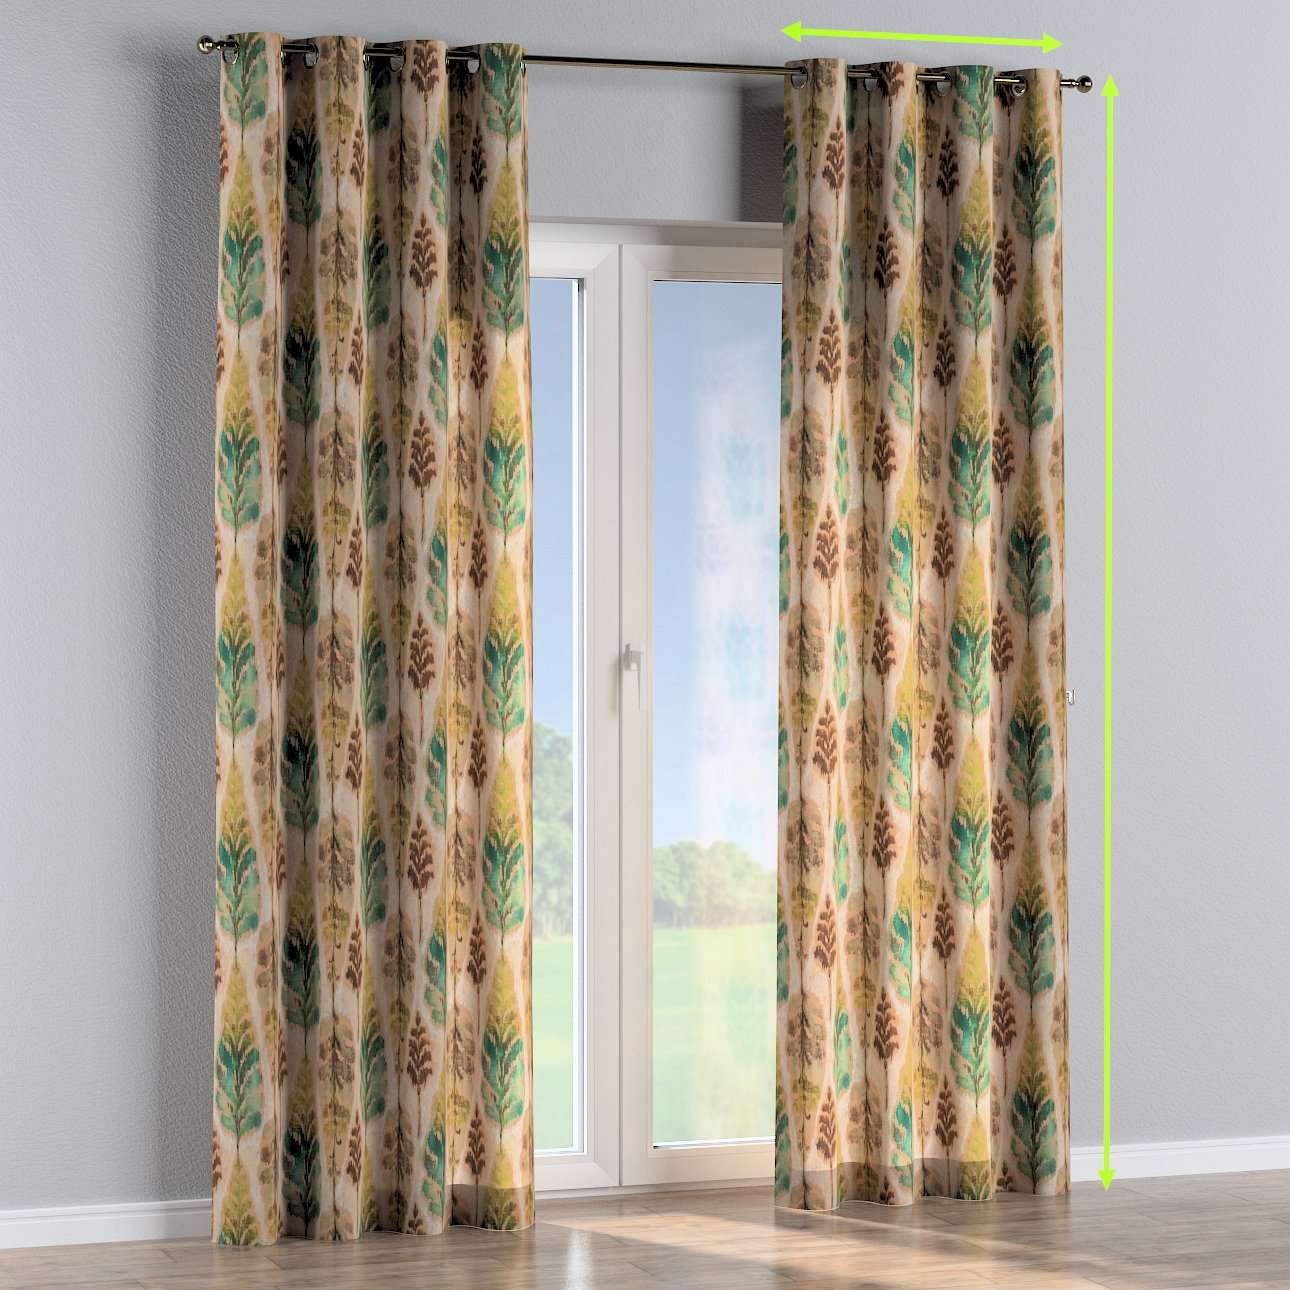 Eyelet lined curtains in collection Urban Jungle, fabric: 141-60